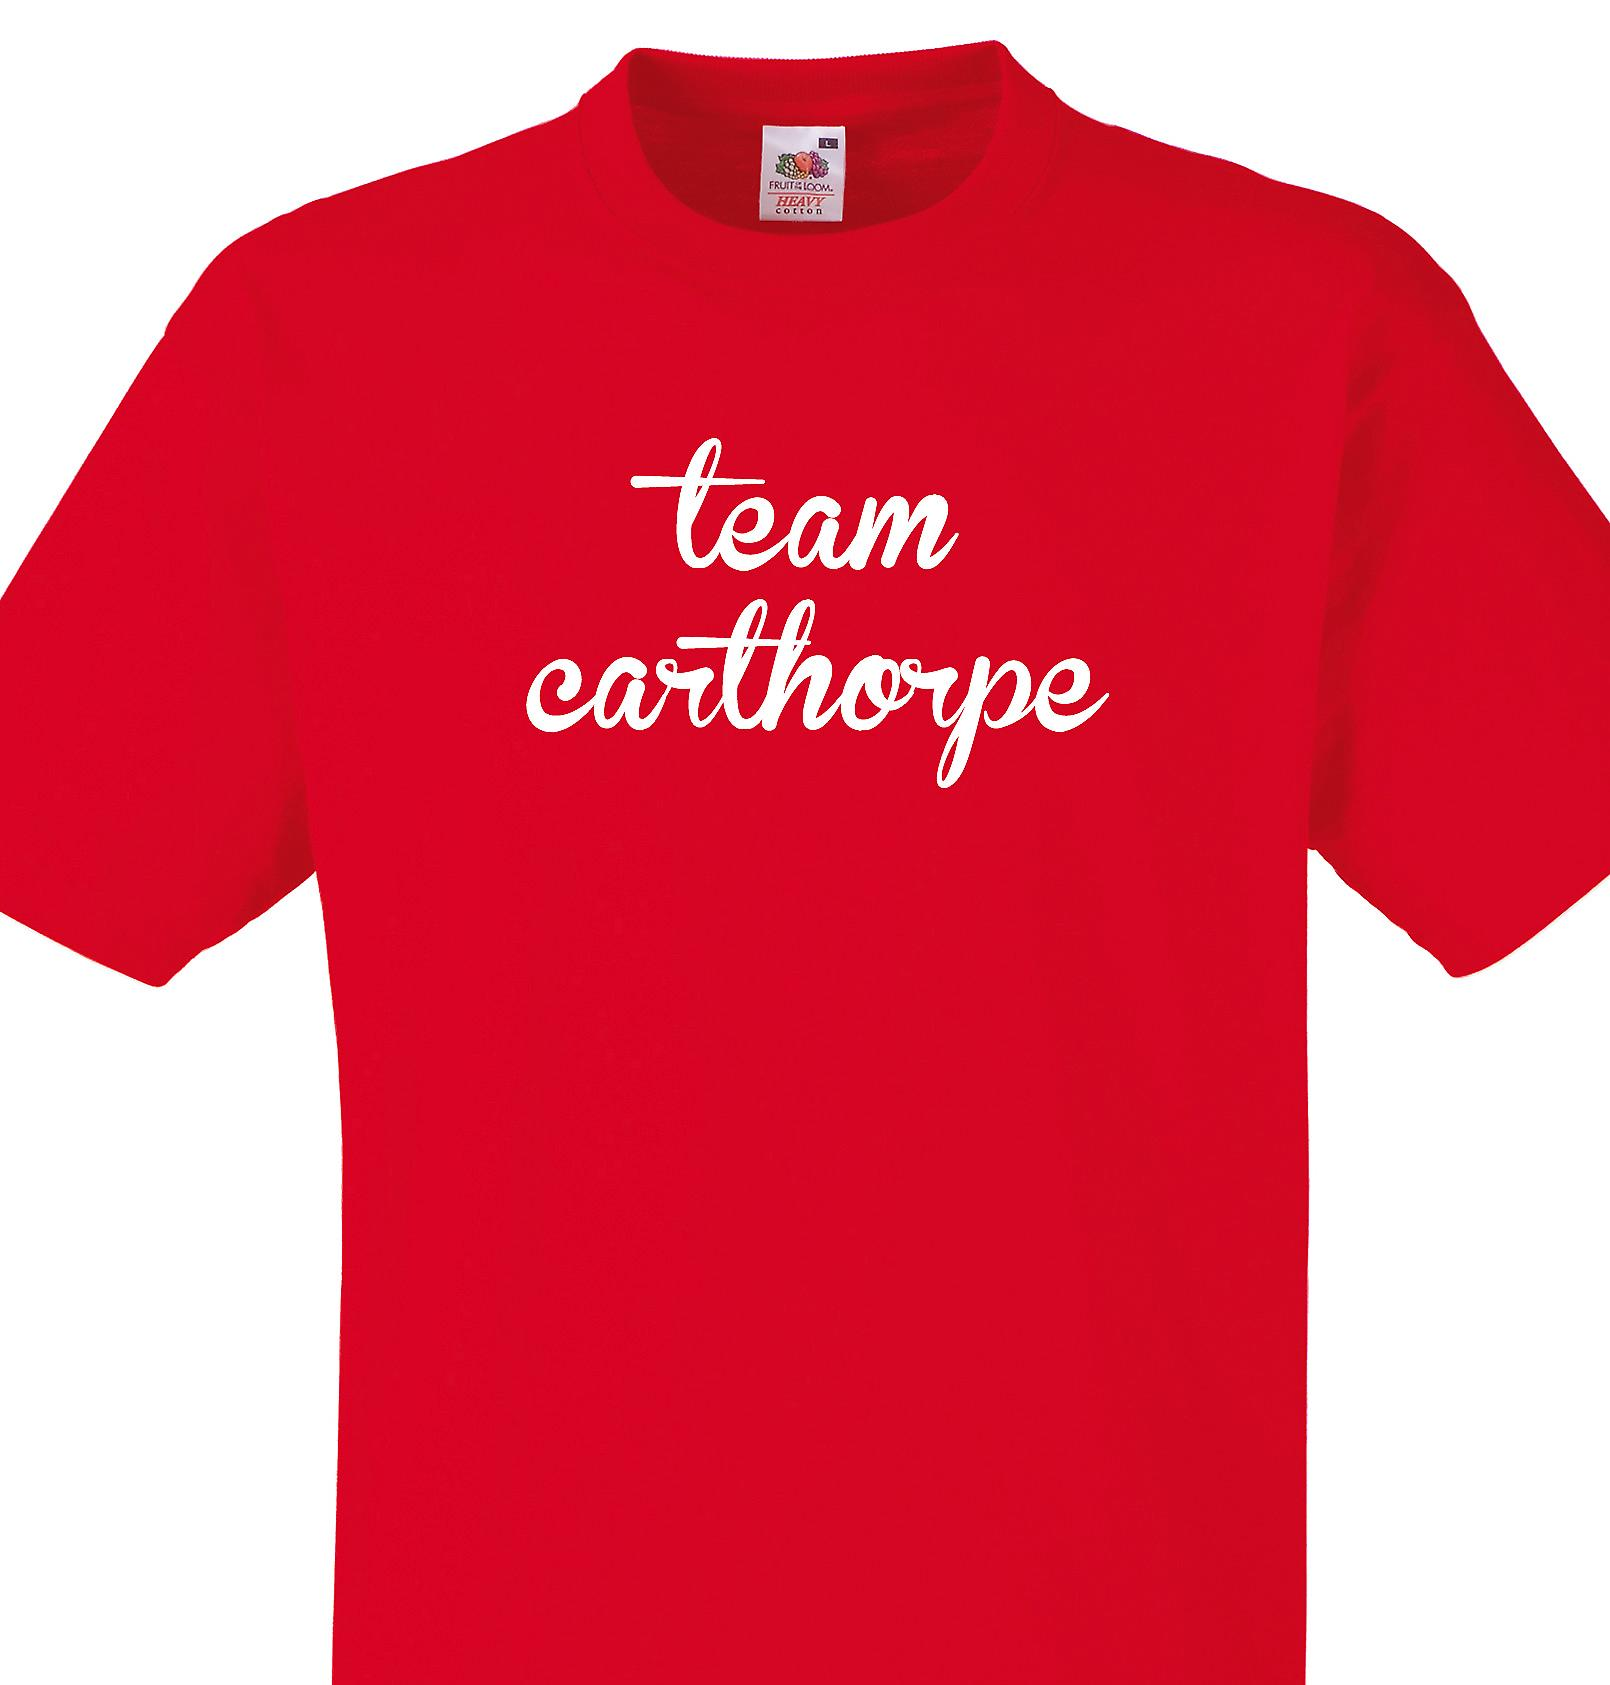 Team Carthorpe Red T shirt